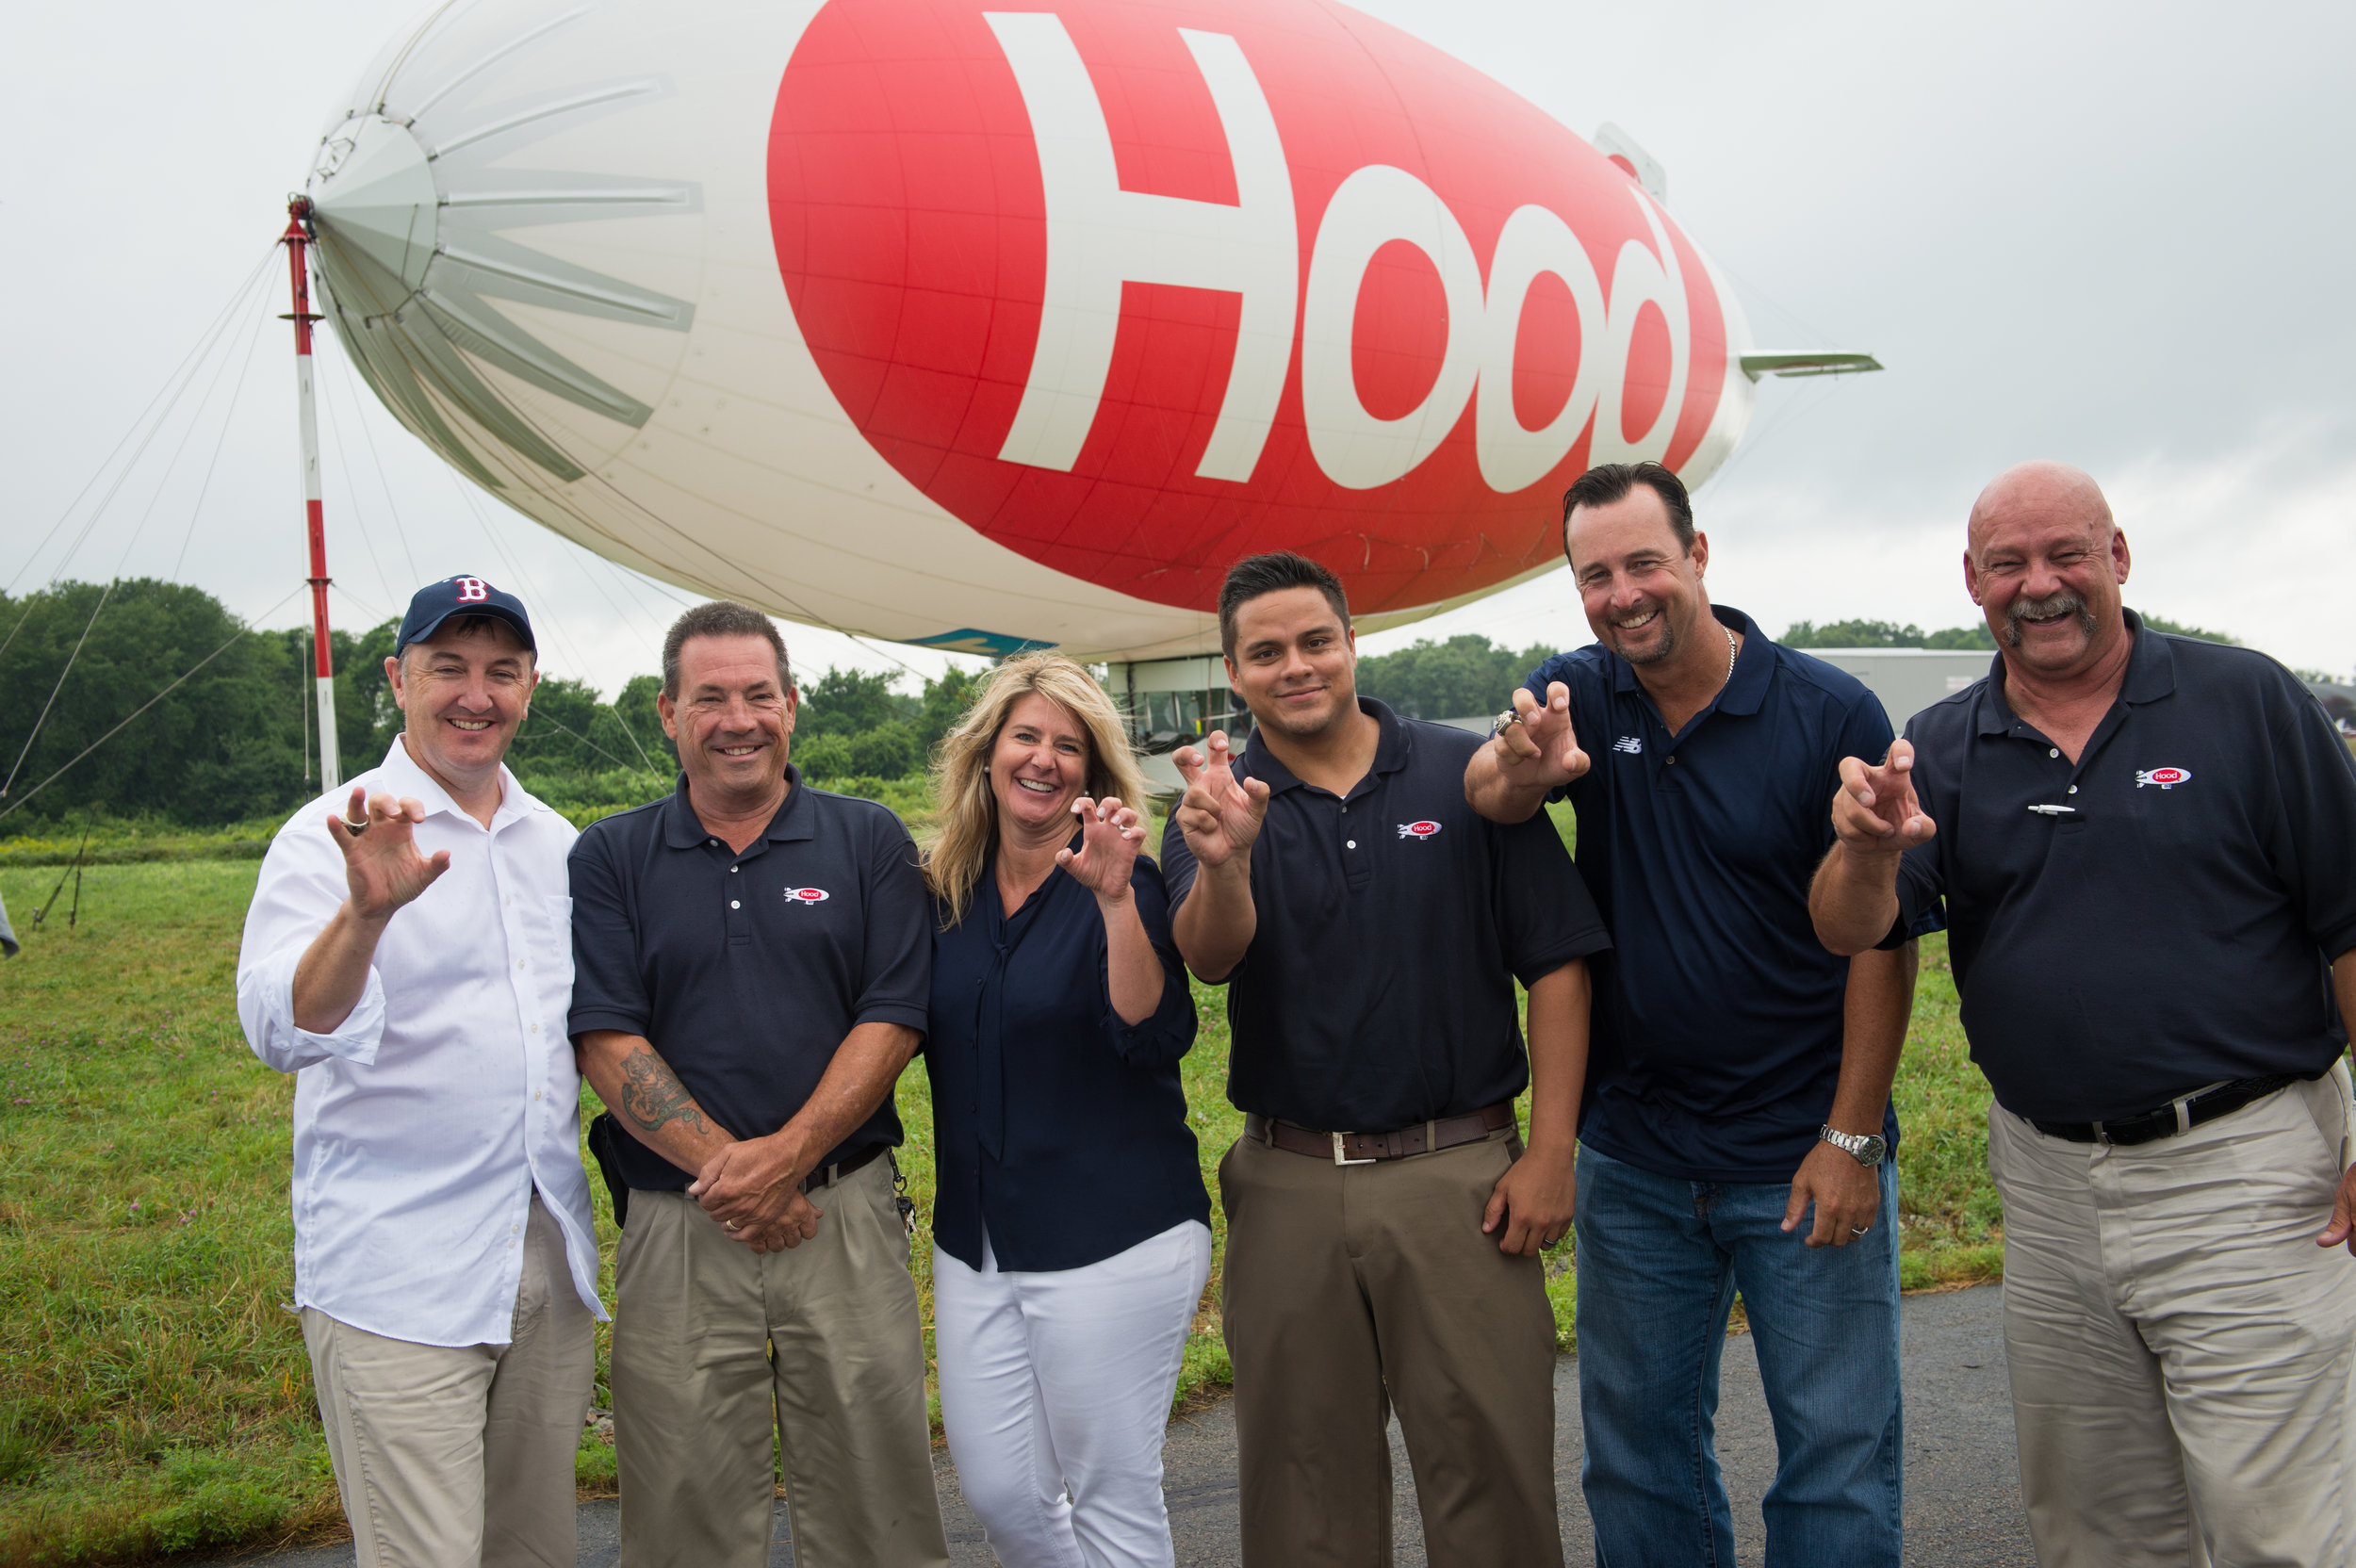 Corporate Events 13Hood Blimp024*2-2.jpg